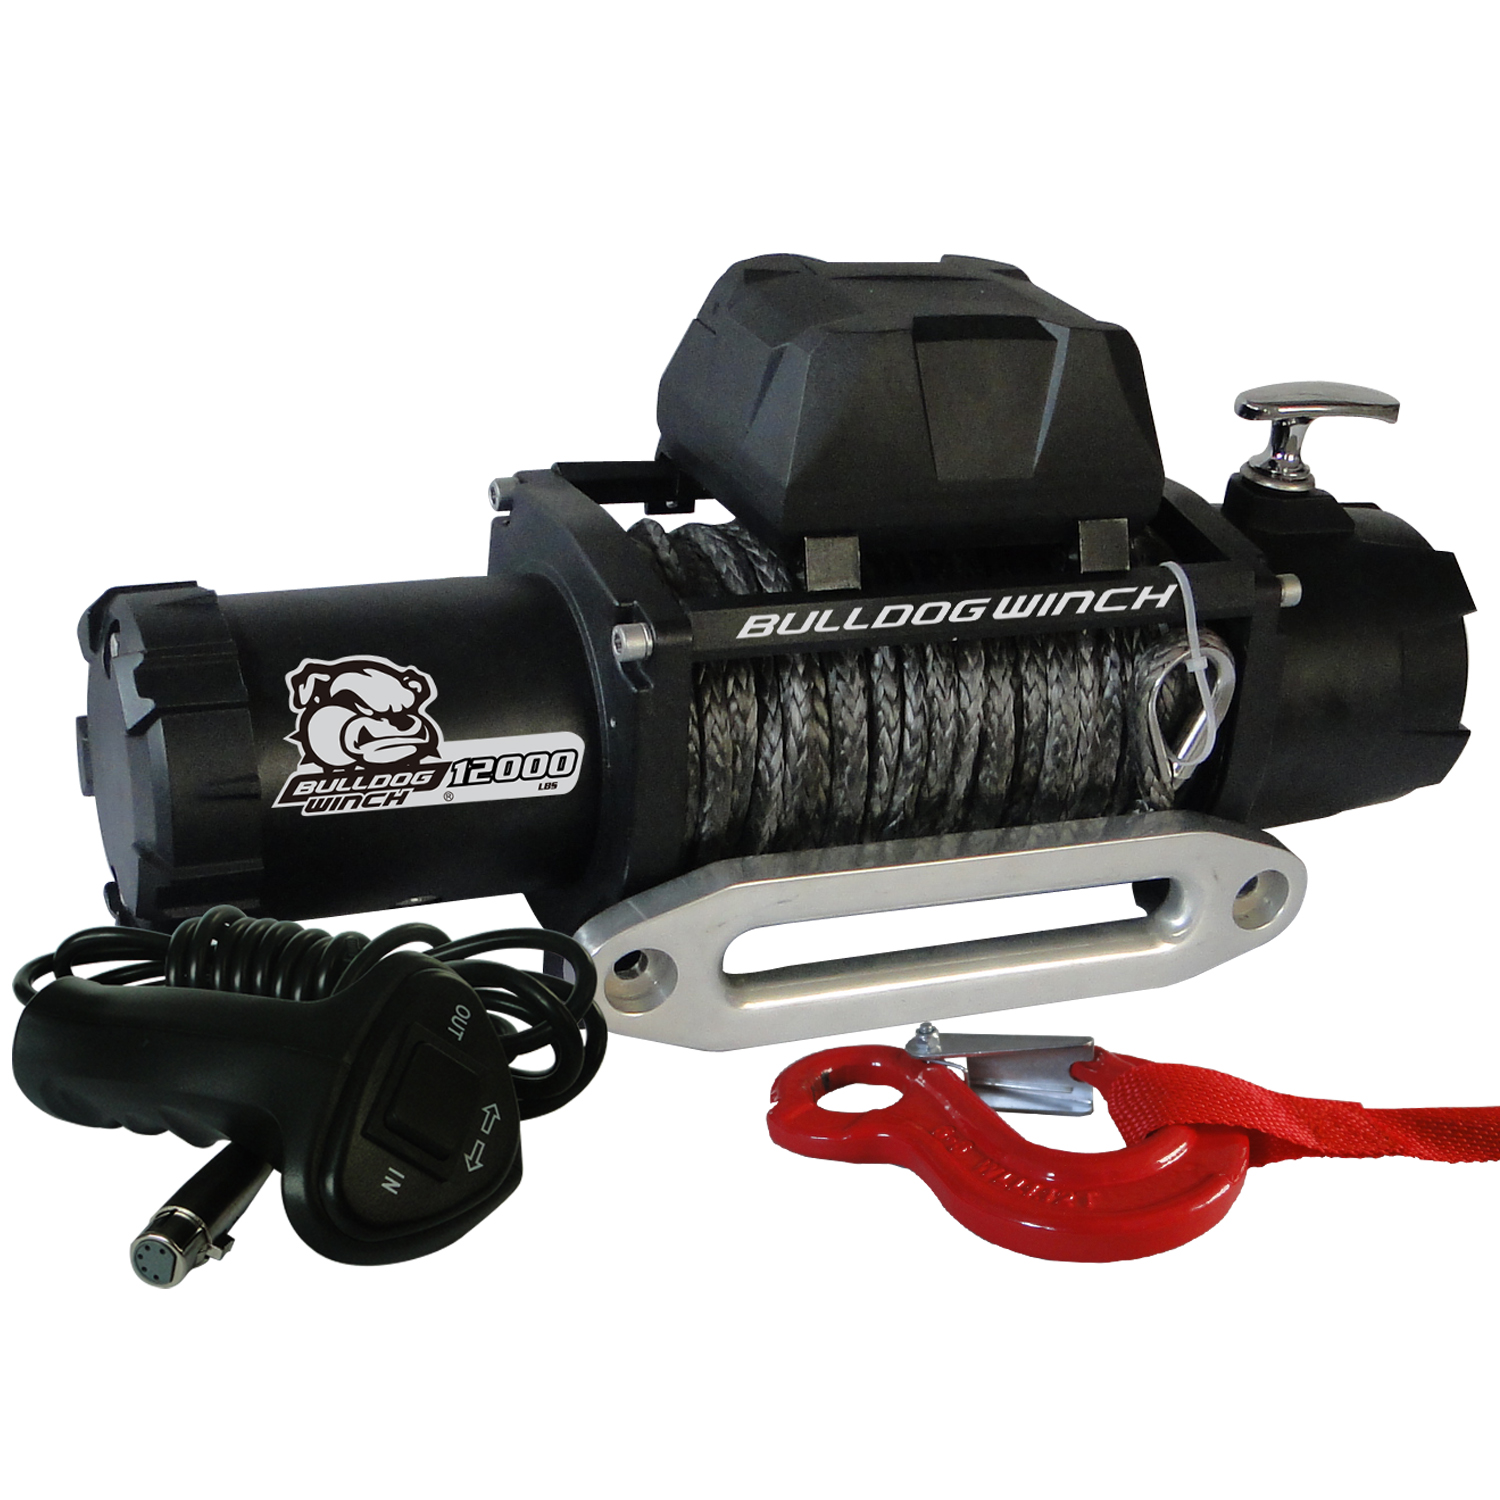 12,00 LB Winch 100 Ft Synthetic Rope 6.0hp Series Wound Motor Roller Fairlead Bulldog Winch